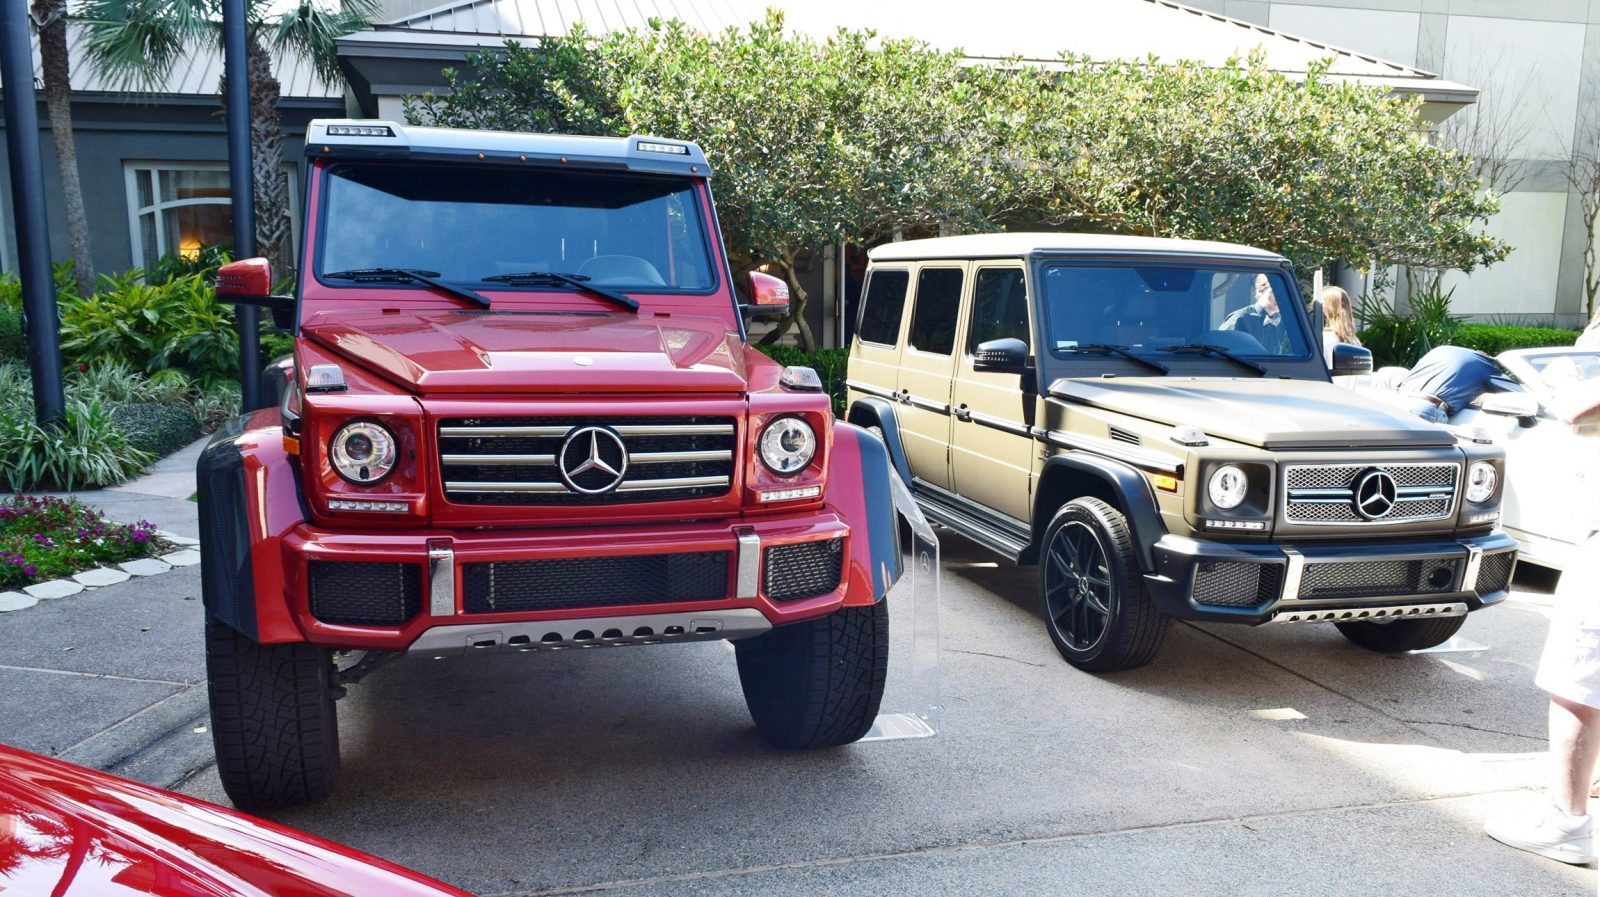 2017 mercedes benz g550 4x4 at amelia island concours 45 photos. Black Bedroom Furniture Sets. Home Design Ideas